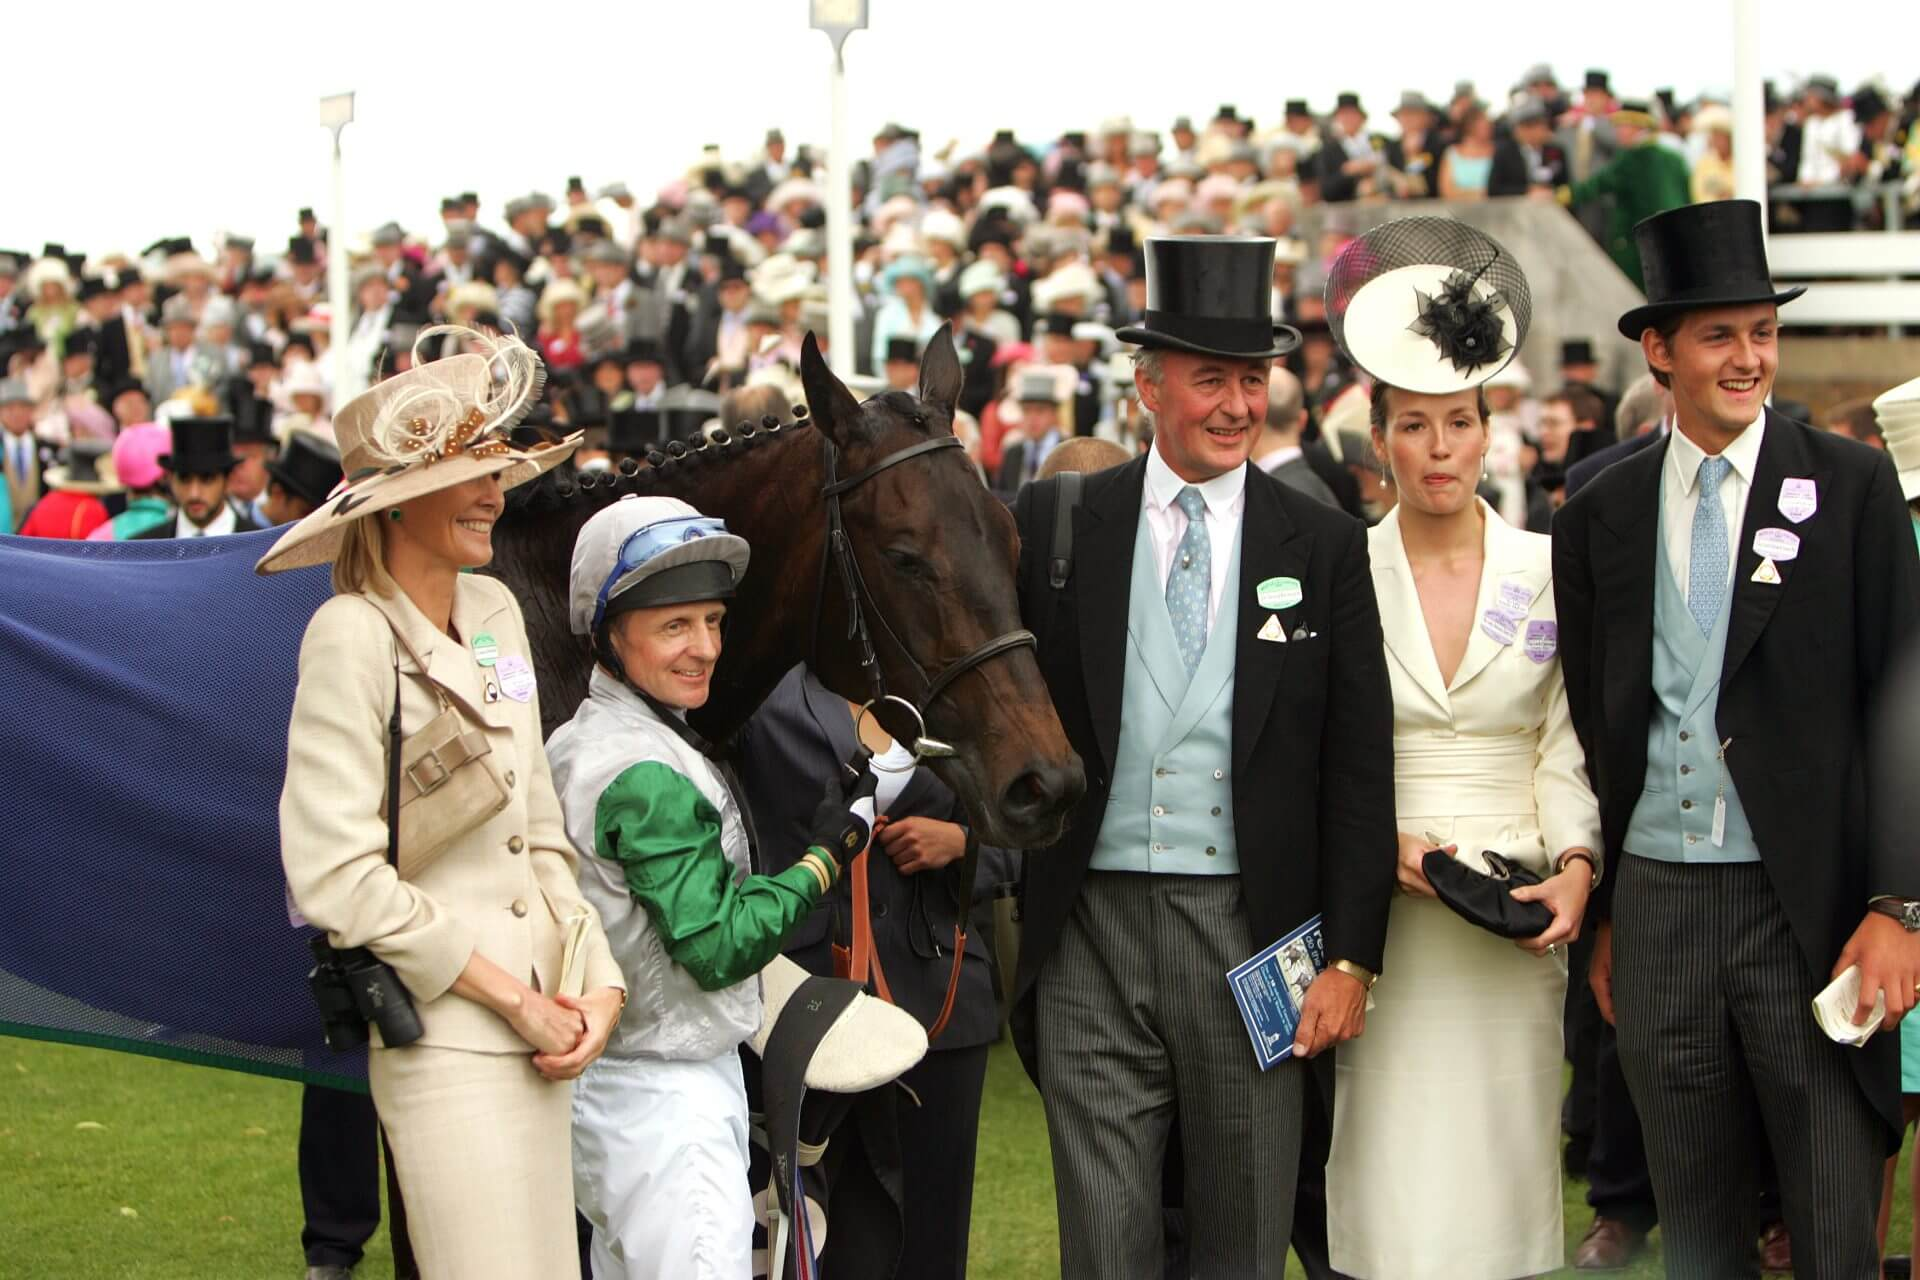 Attraction with the Duke of Roxburghe and family after winning the Coronation Stakes at Royal Ascot (credit RacingFotos)